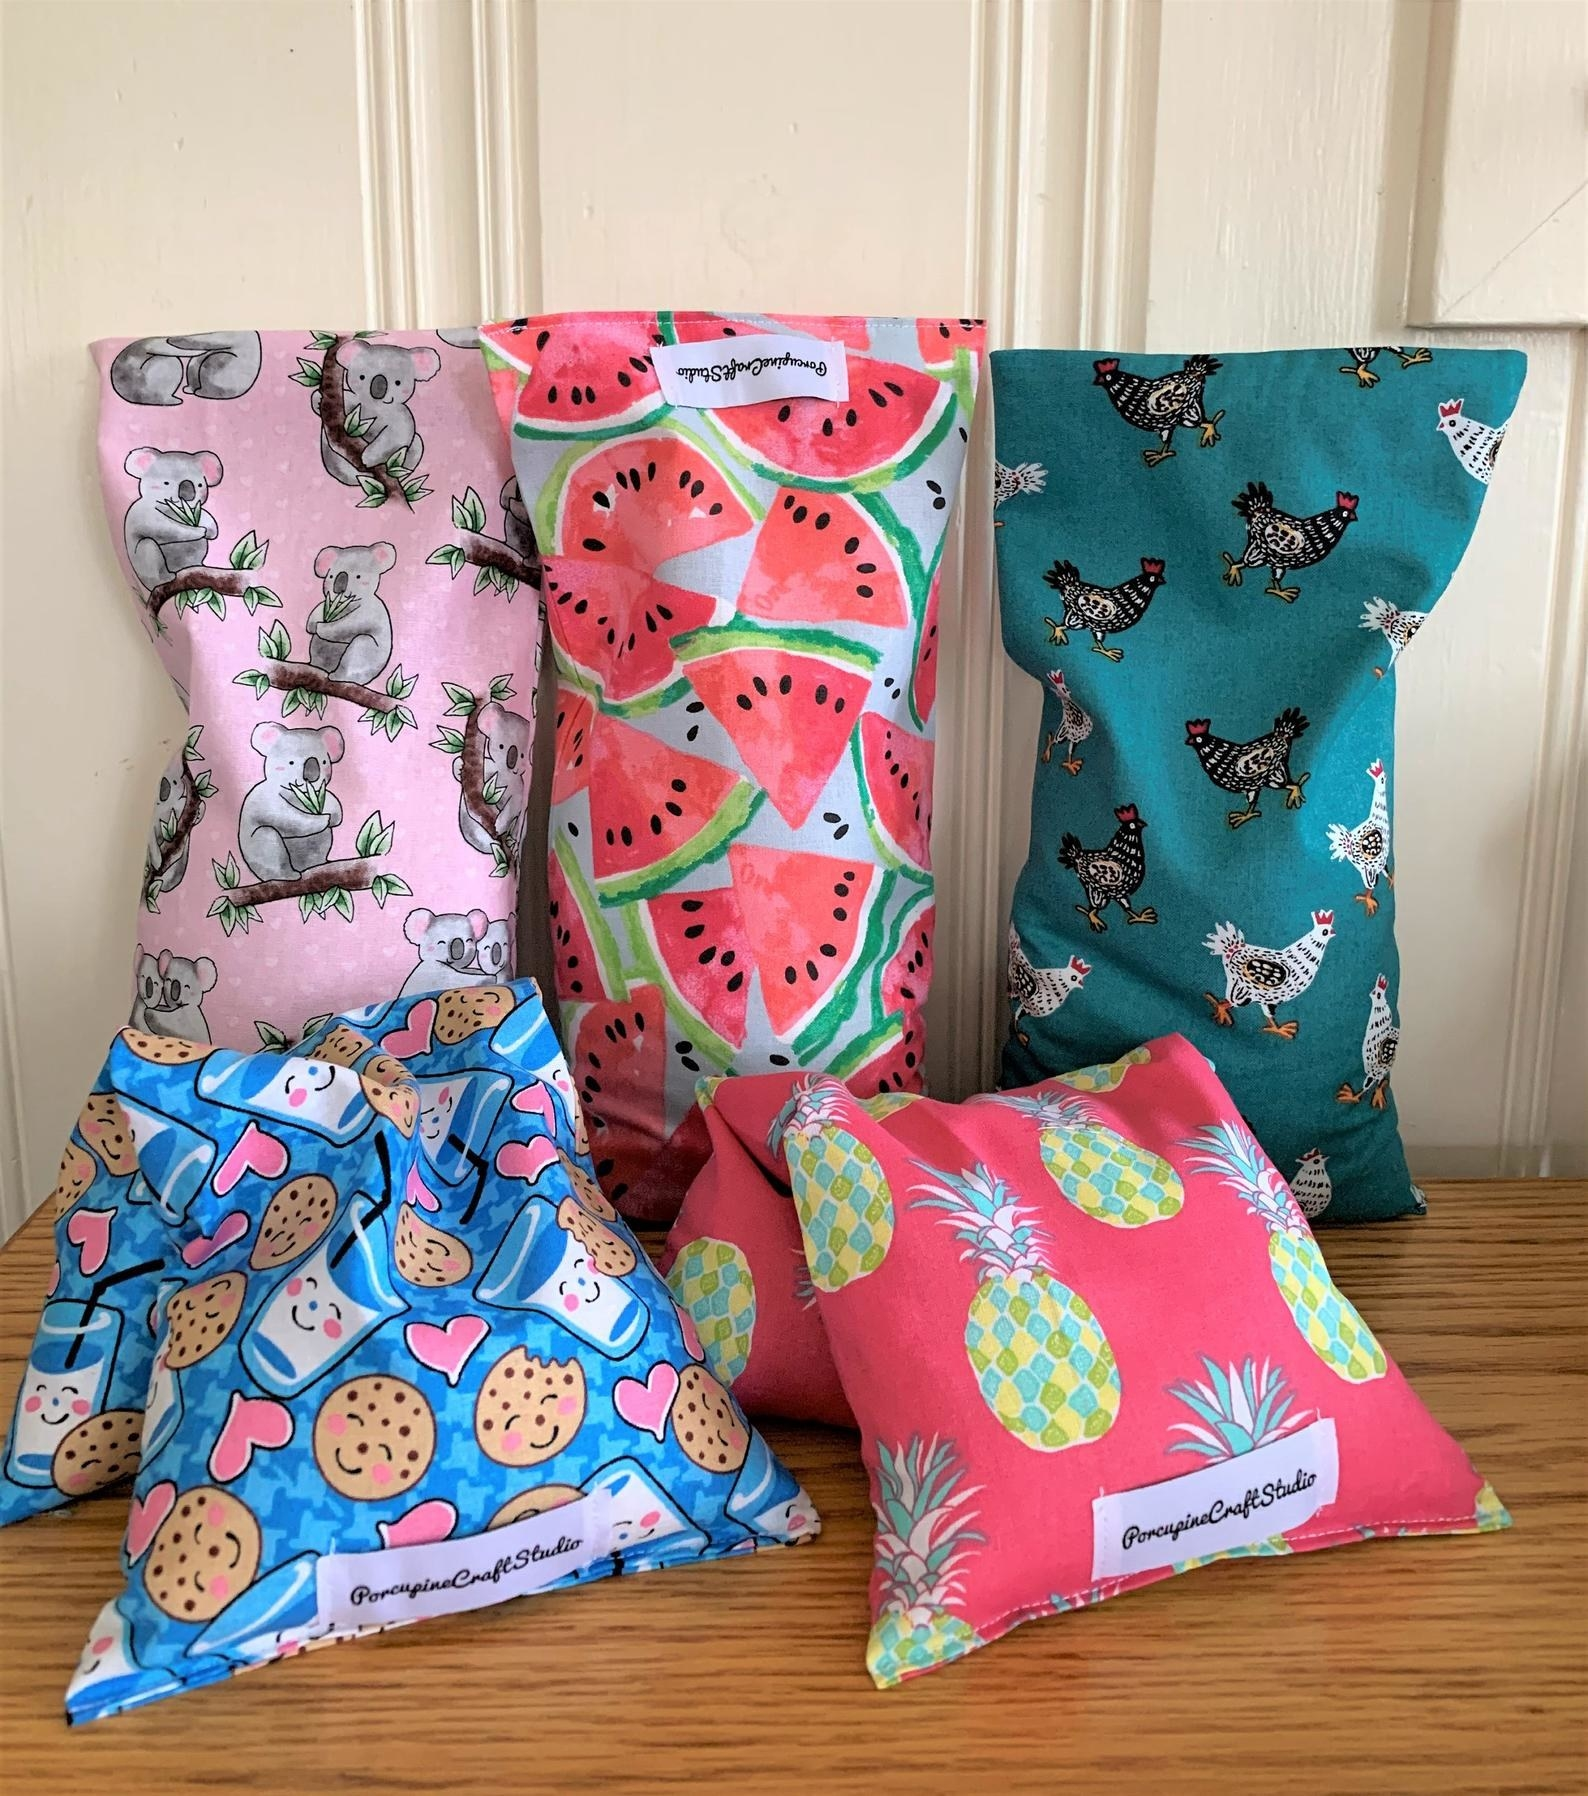 Five rice bags in a variety of patterns